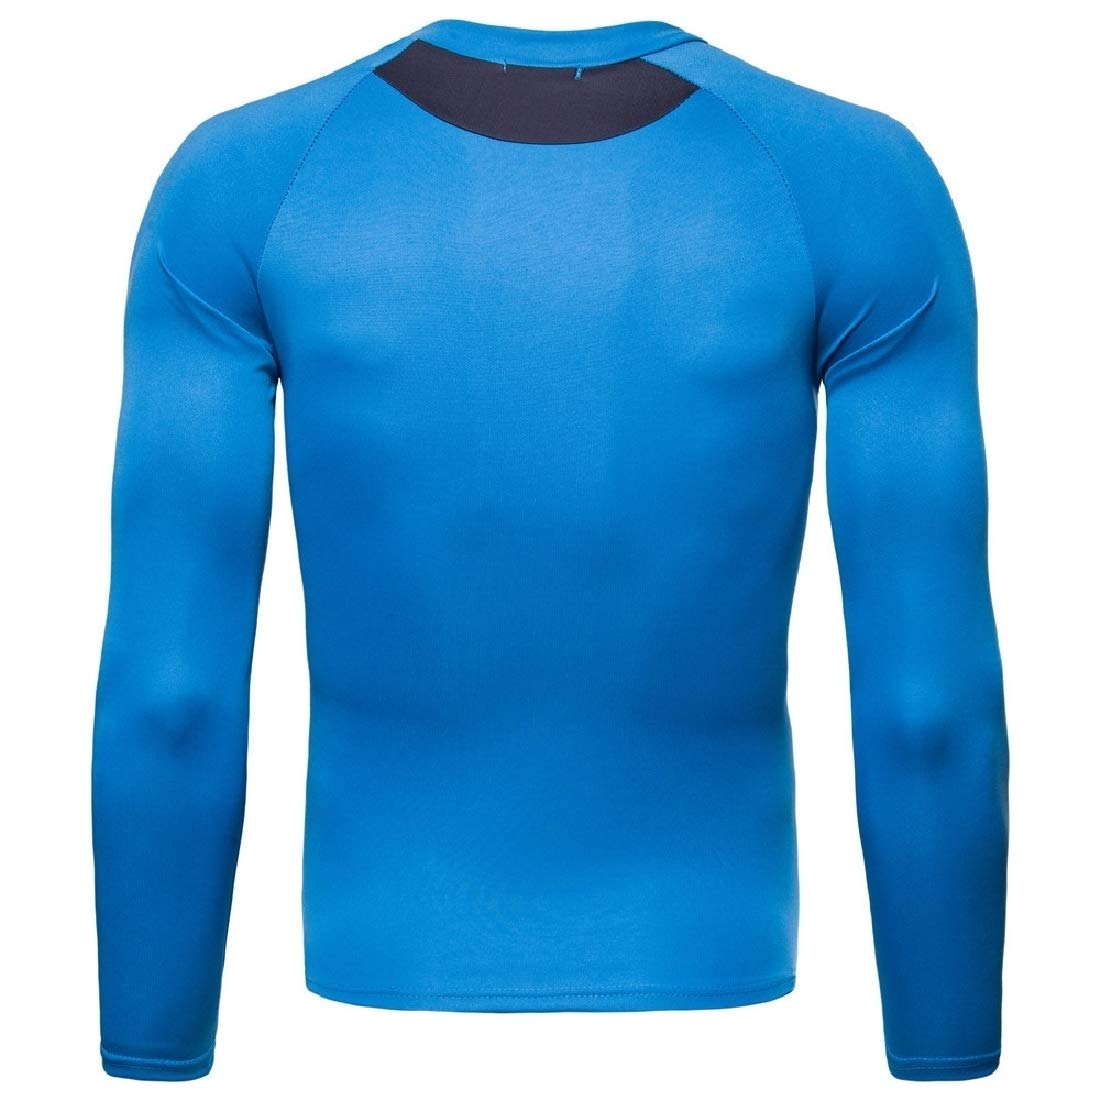 YUNY Mens Crew-Neck Absorb Sweat Quick Dry Gym Fit T-Shirts Tops Lake Blue M